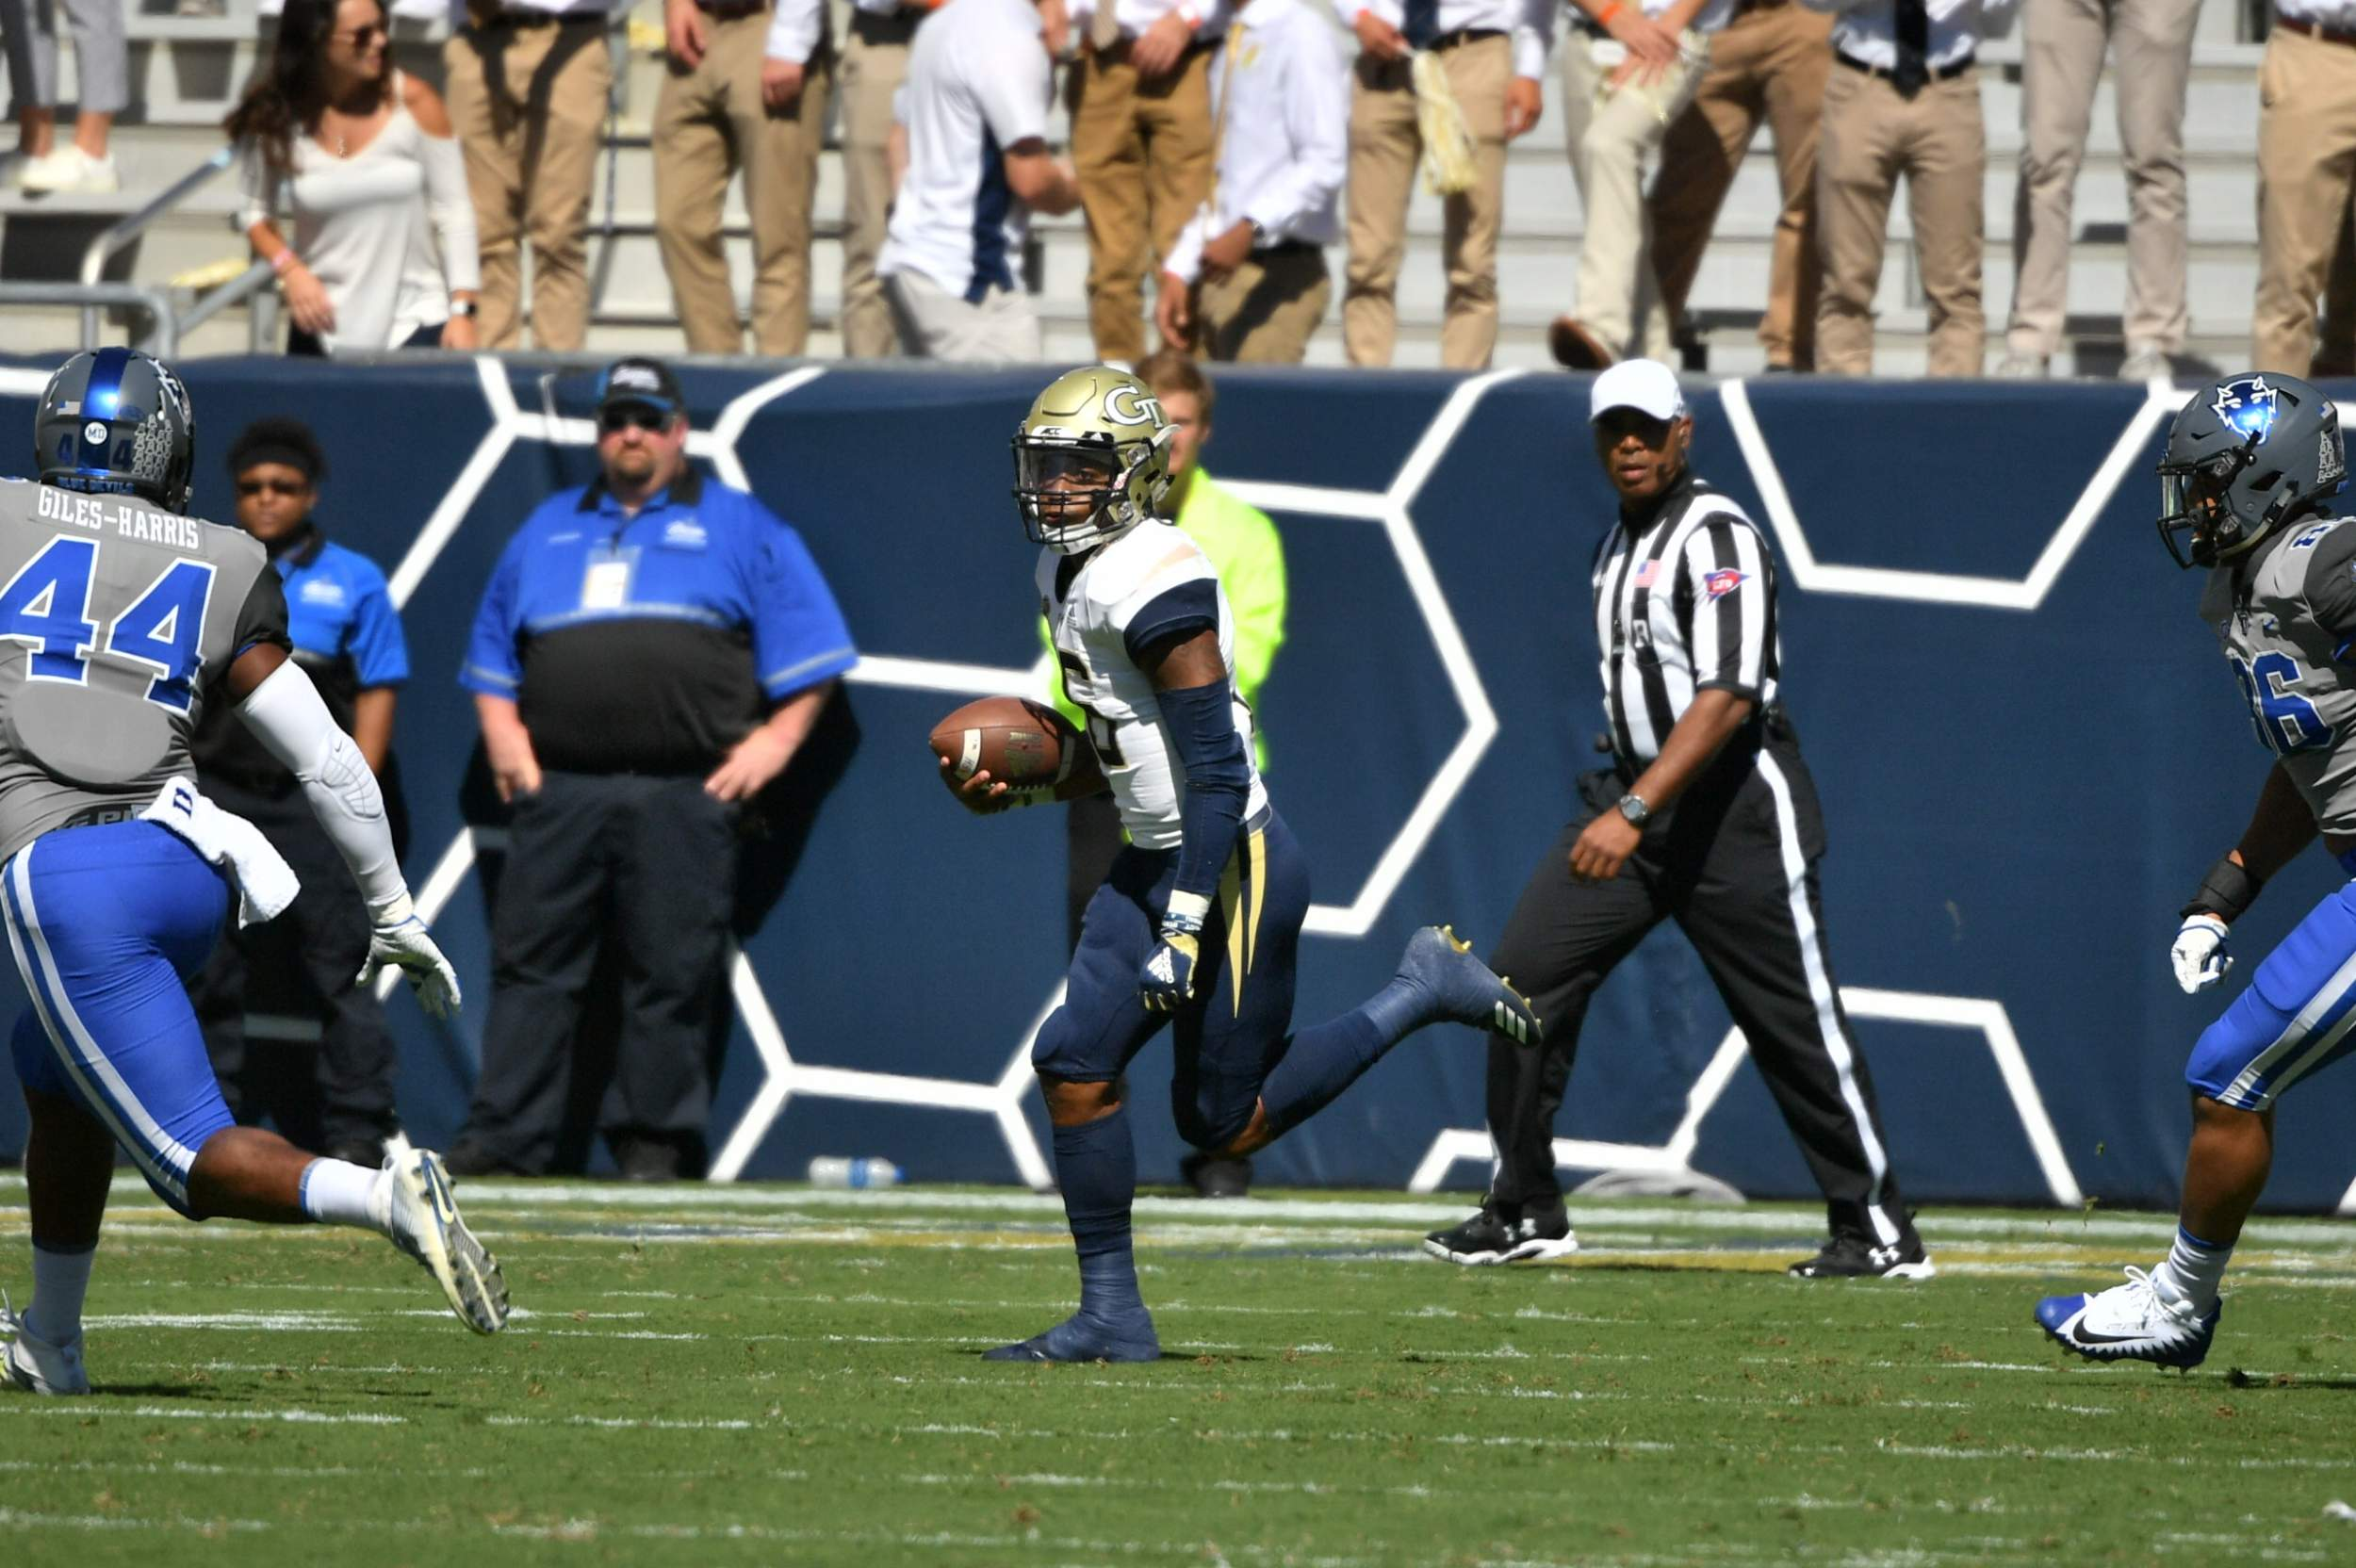 Photos: Football vs Duke